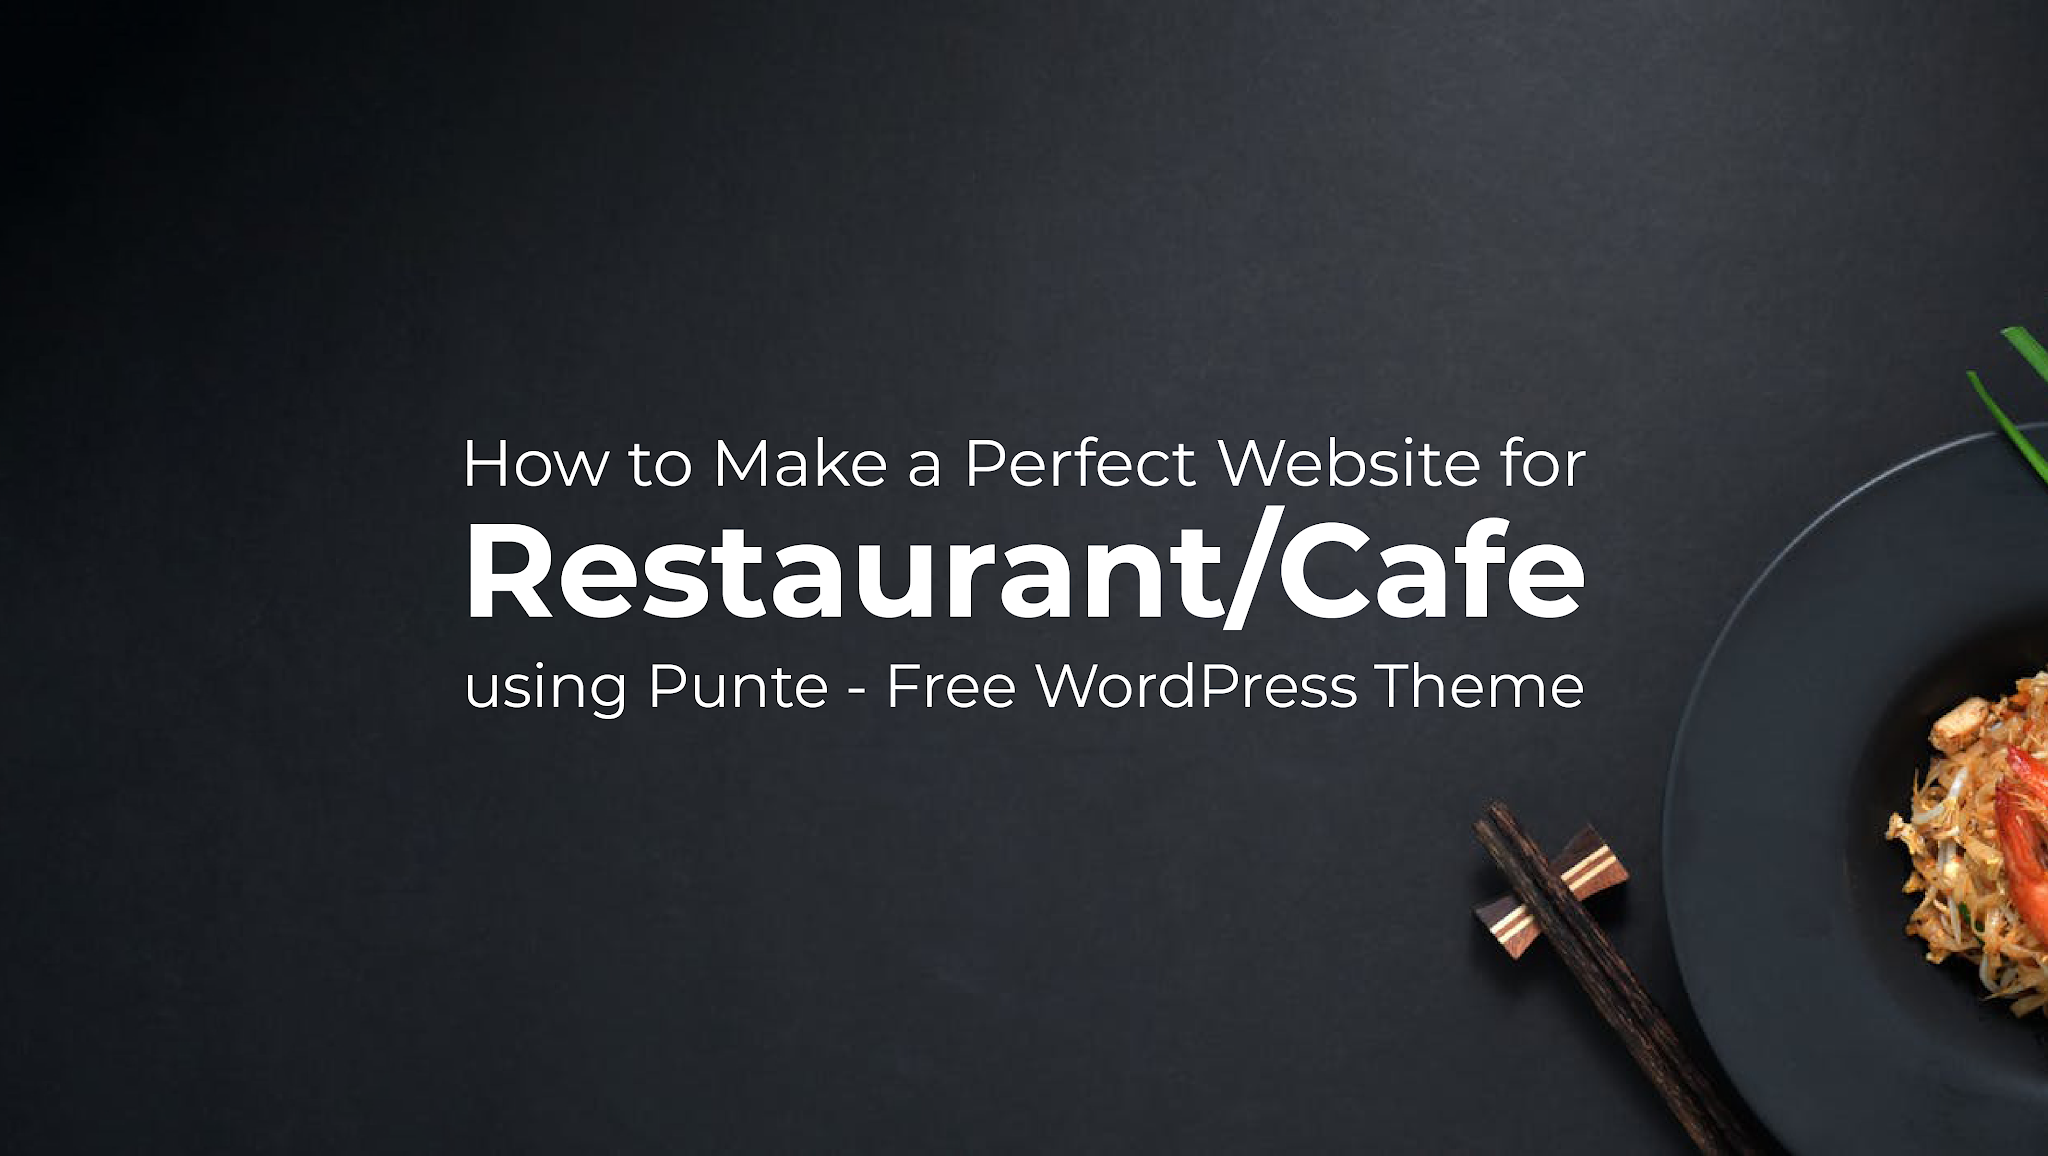 How to Make a Perfect Website for Restaurant using Punte - Free WordPress Theme